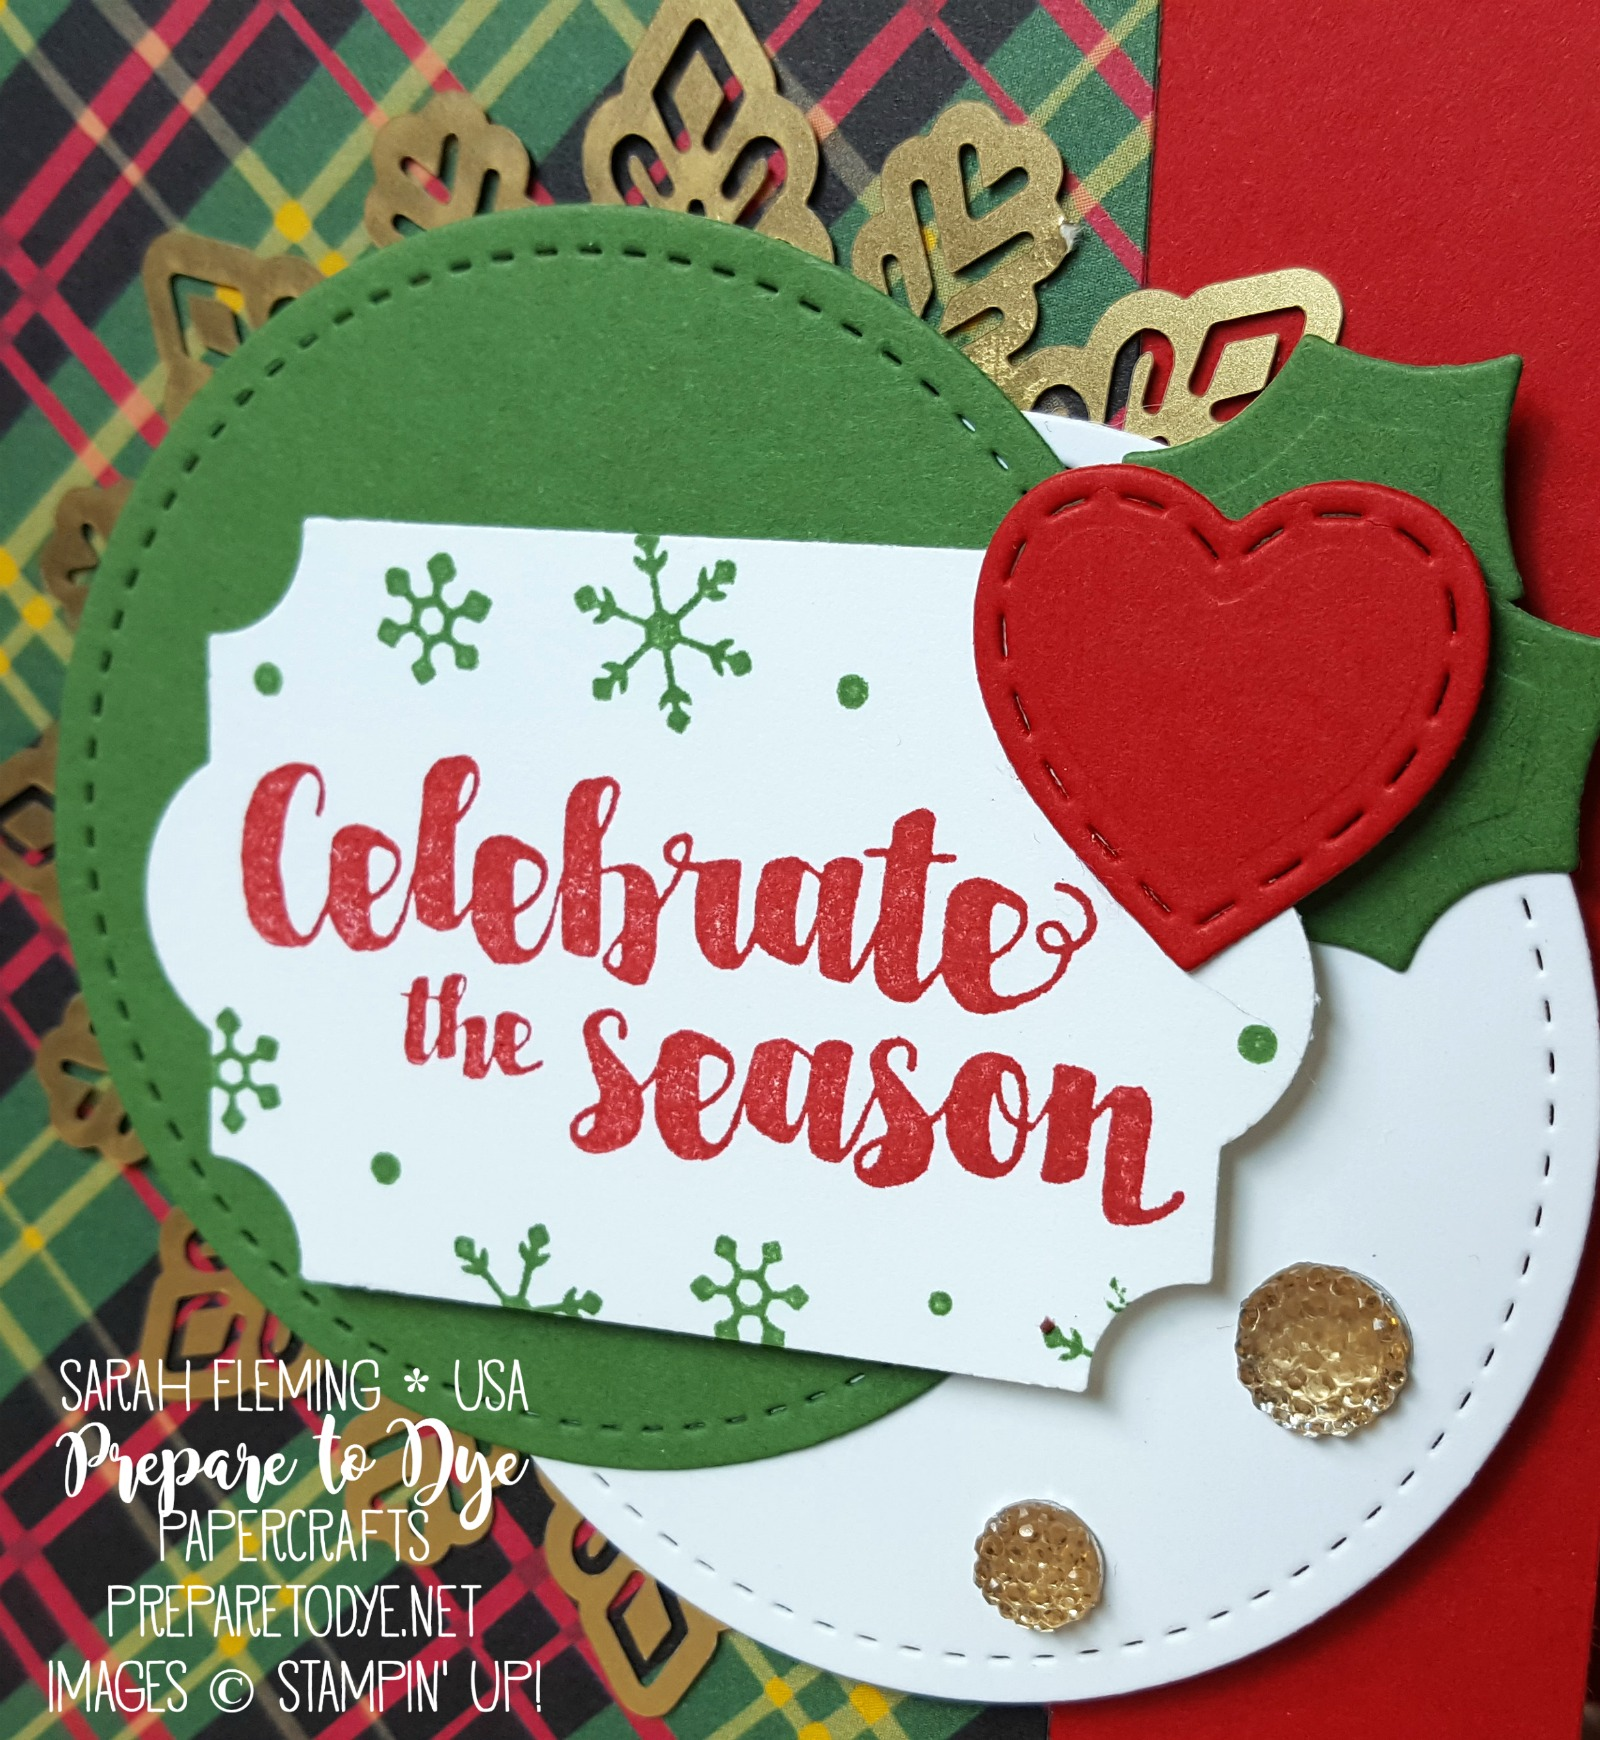 Stampin' Up! handmade Christmas card - Tags & Trimmings bundle with Trim Your Stocking thinlits, Foil Snowflakes, Christmas Around the World paper, Stitched Shapes framelits, Everyday Label punch - Sarah Fleming - Prepare to Dye Papercrafts